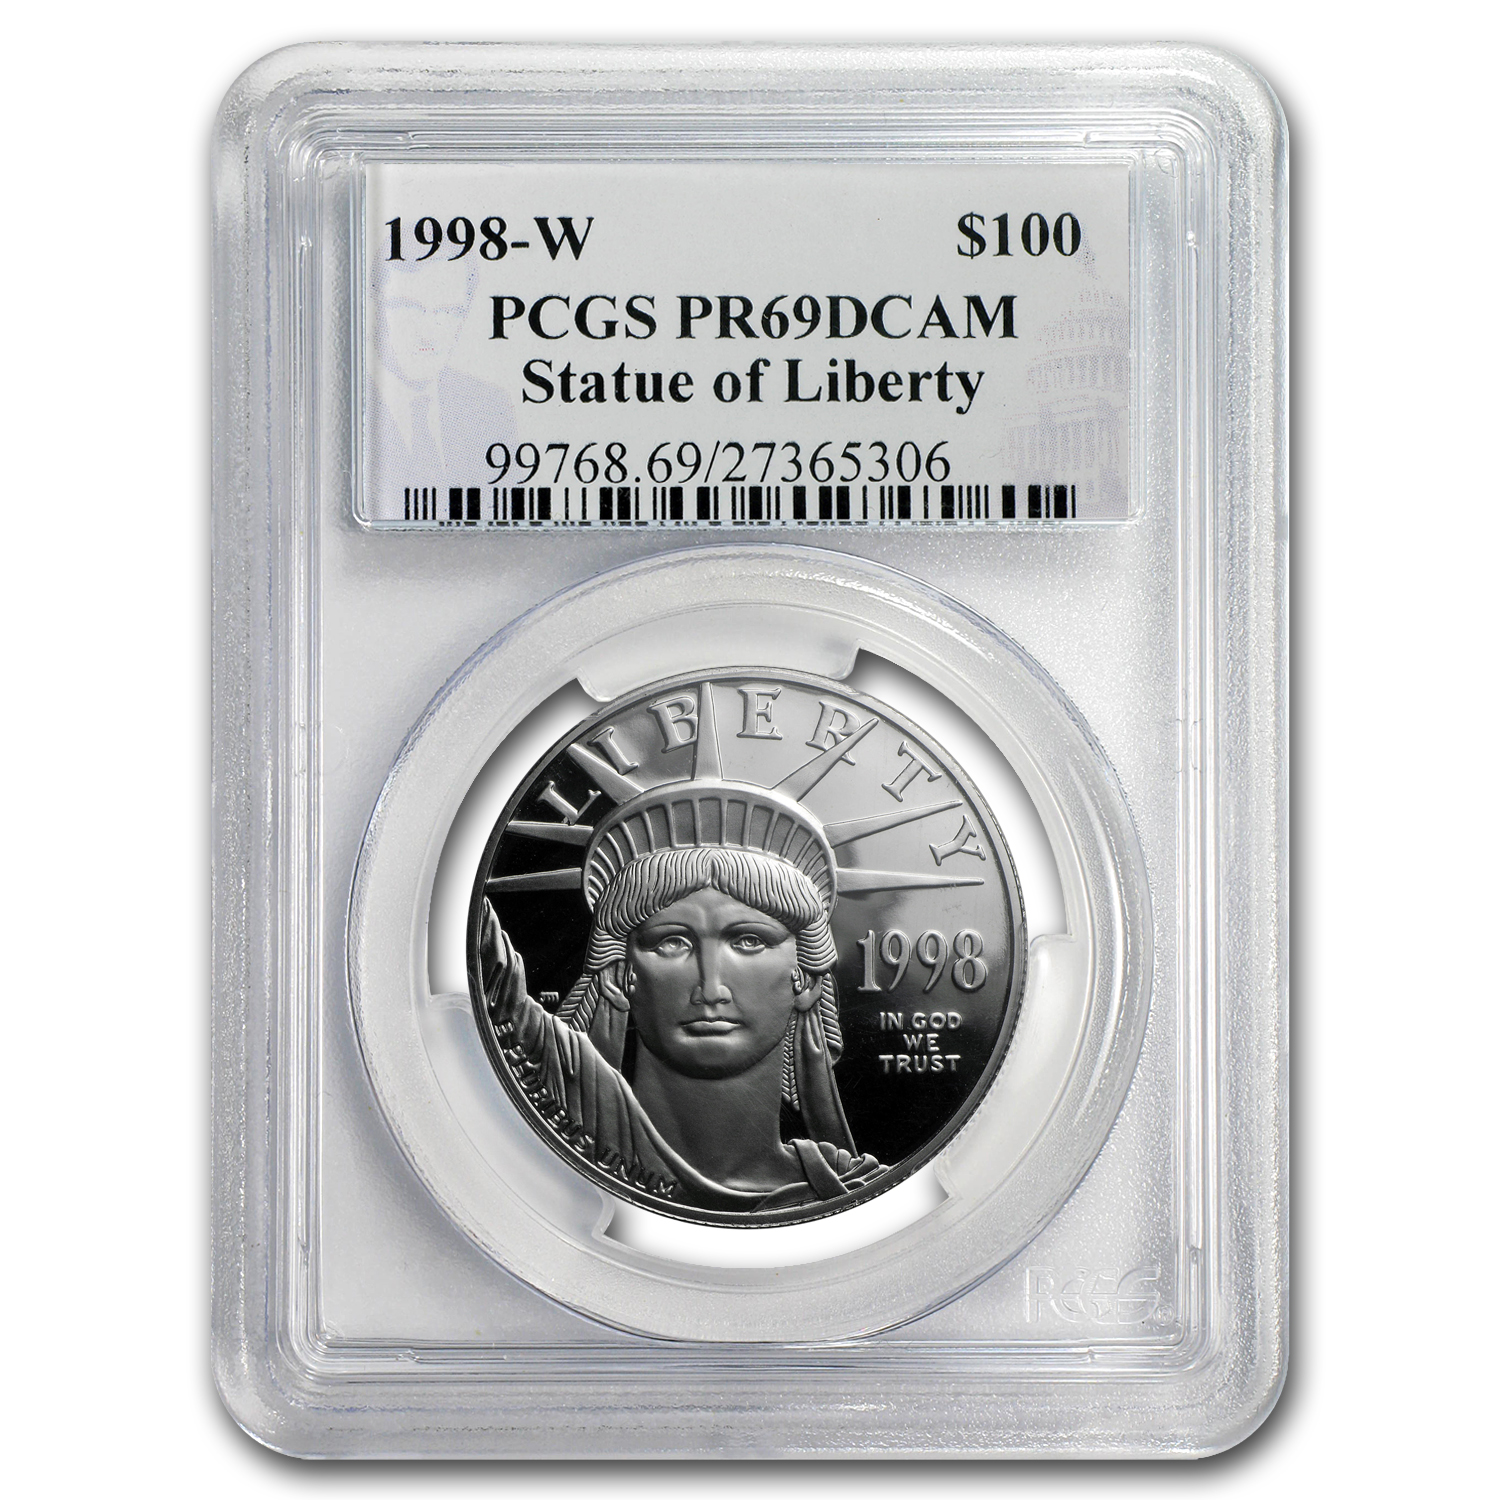 1998-W 1 oz Proof Platinum American Eagle PR-69 PCGS